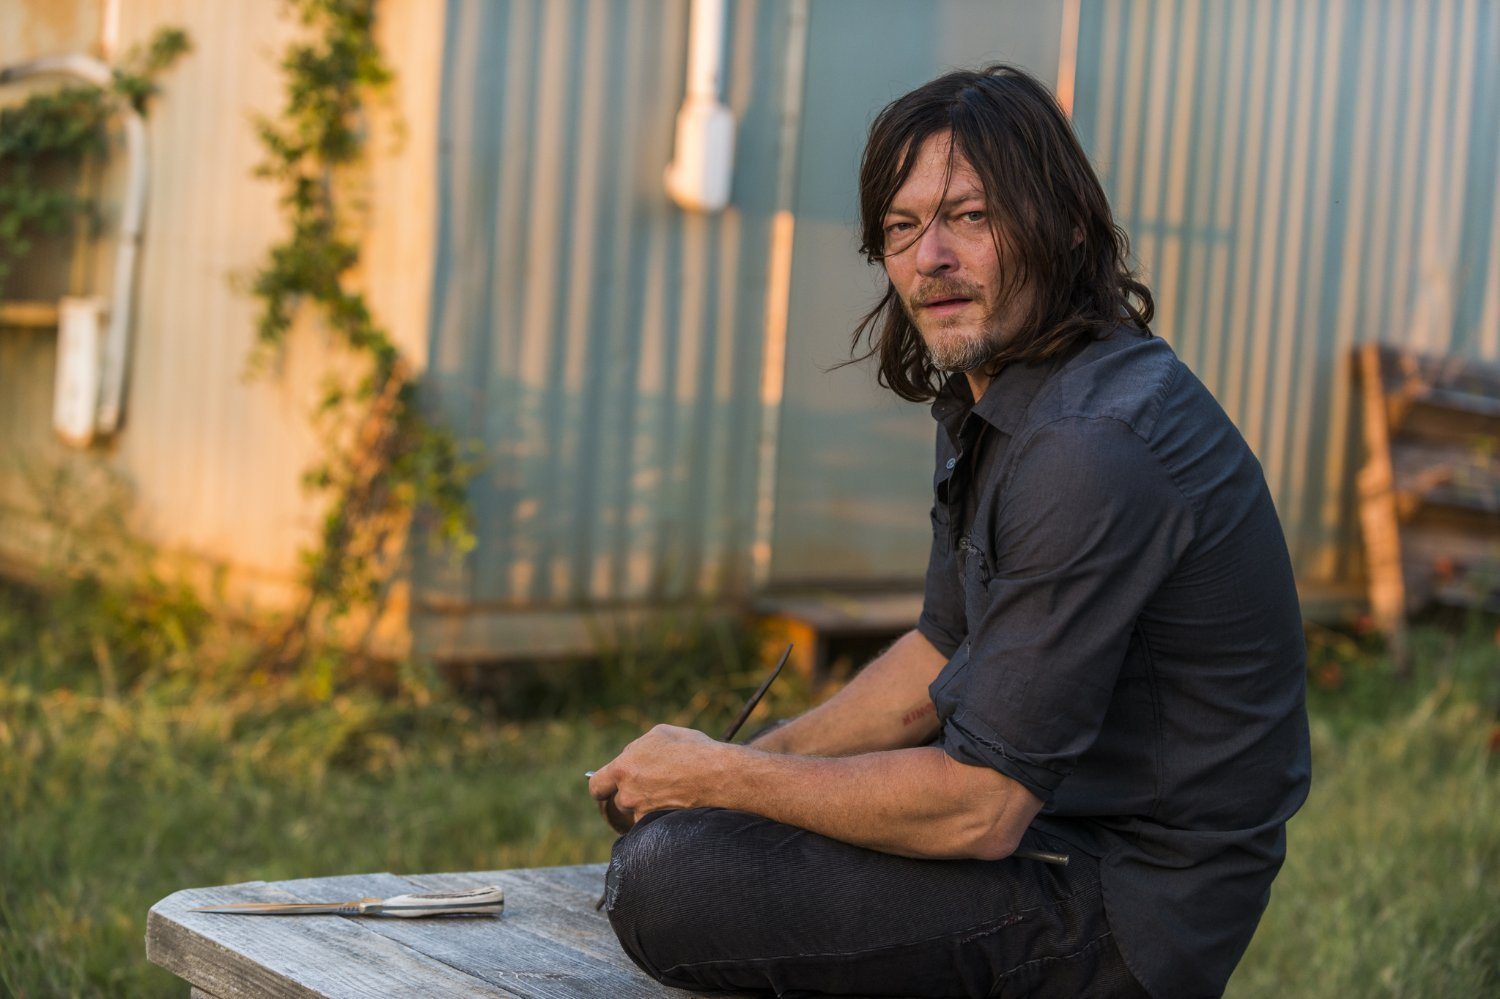 'The Walking Dead' Stuntman Dies After Falling On Set Of The Show